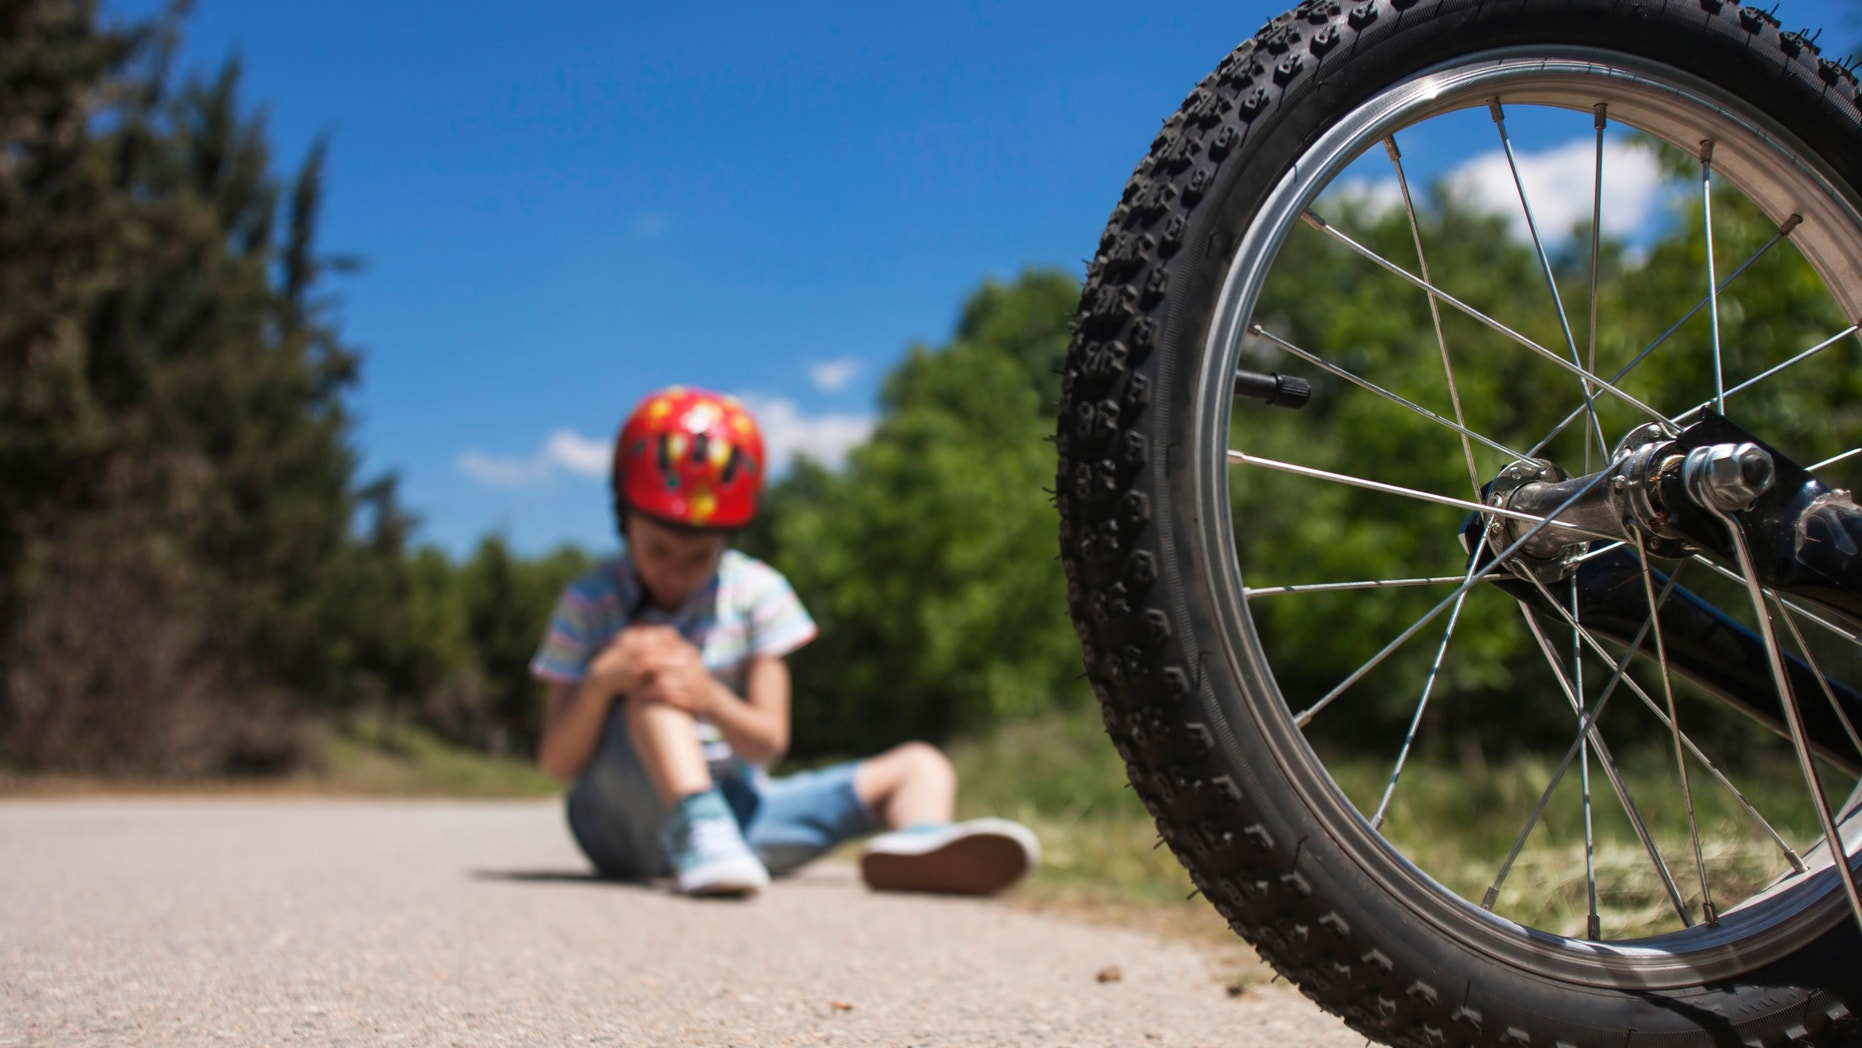 Boy is lying hurt after a bicycle accident. Kids safety concept